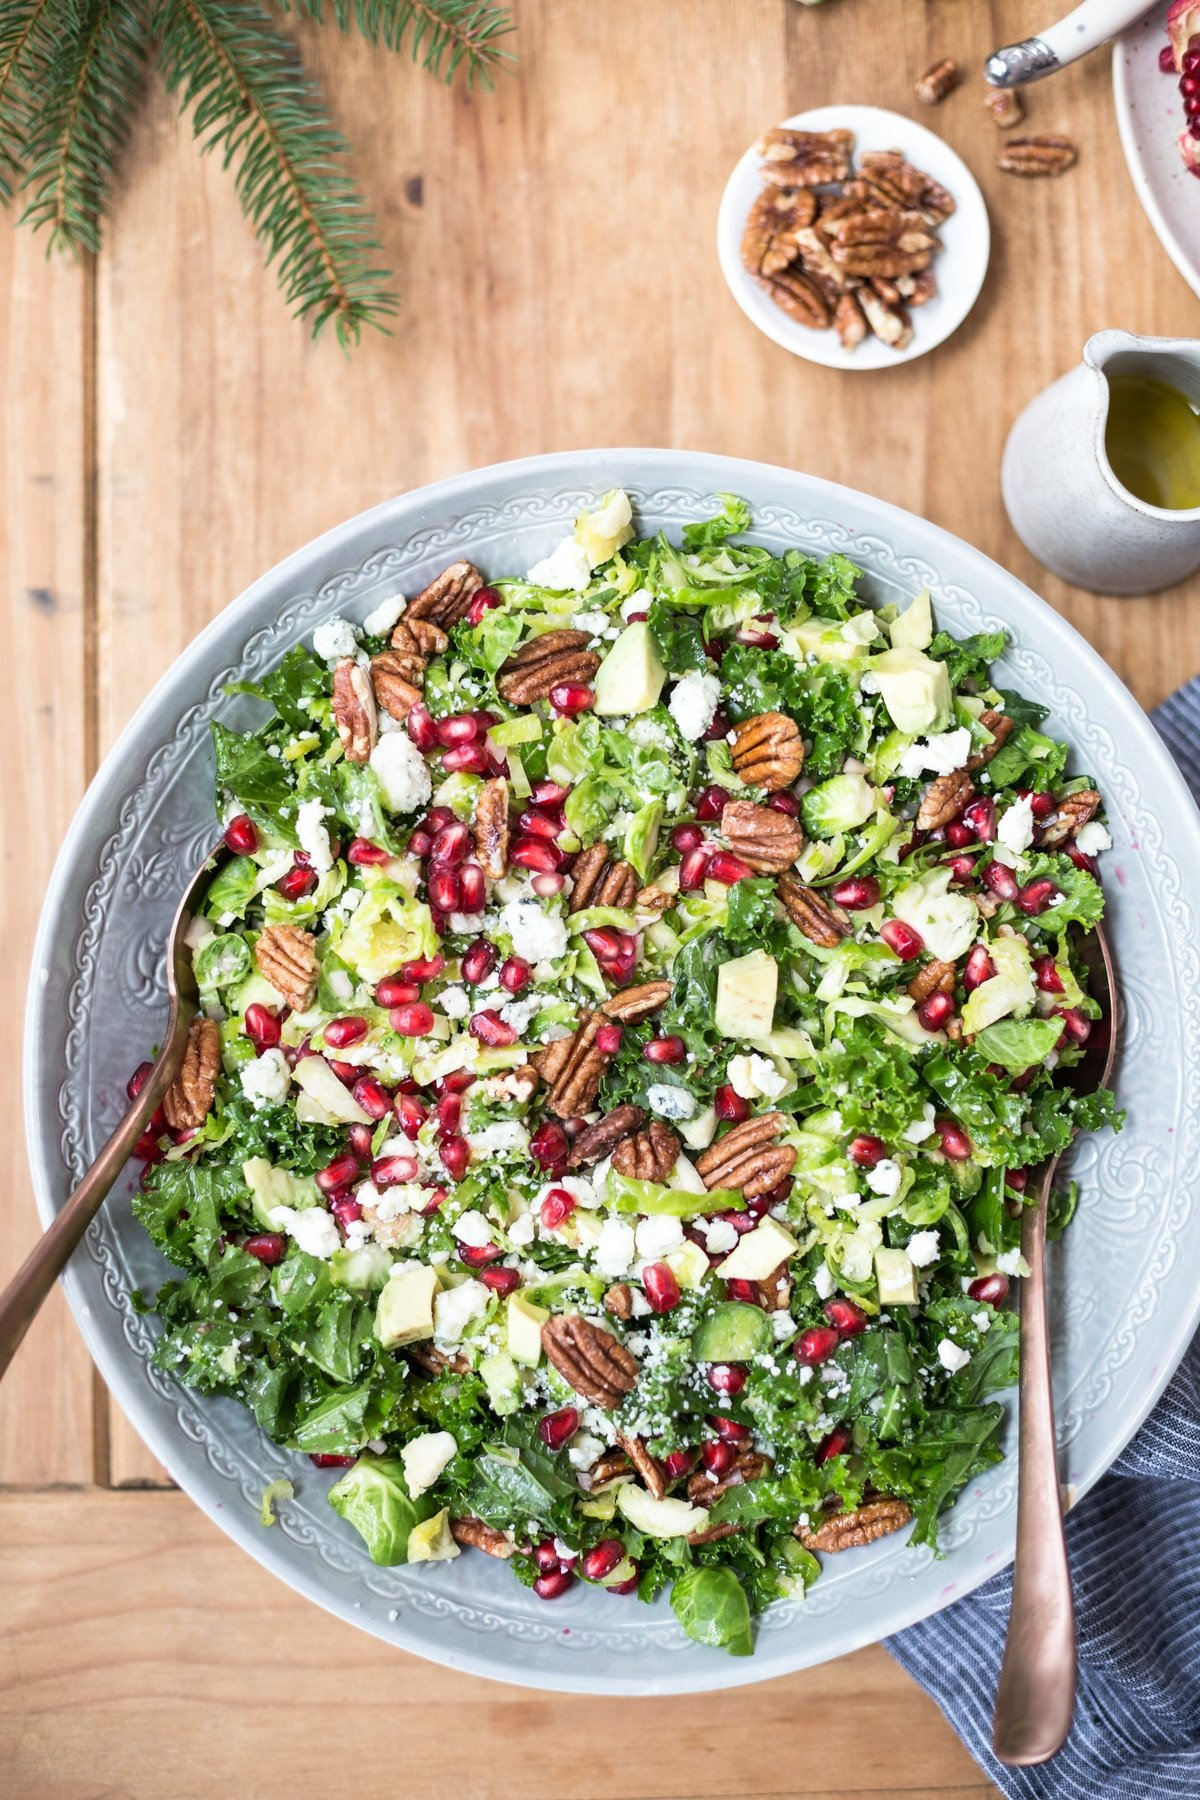 Brussels Sprout Kale Salad topped off with blue cheese, pecans and pomegranate seeds